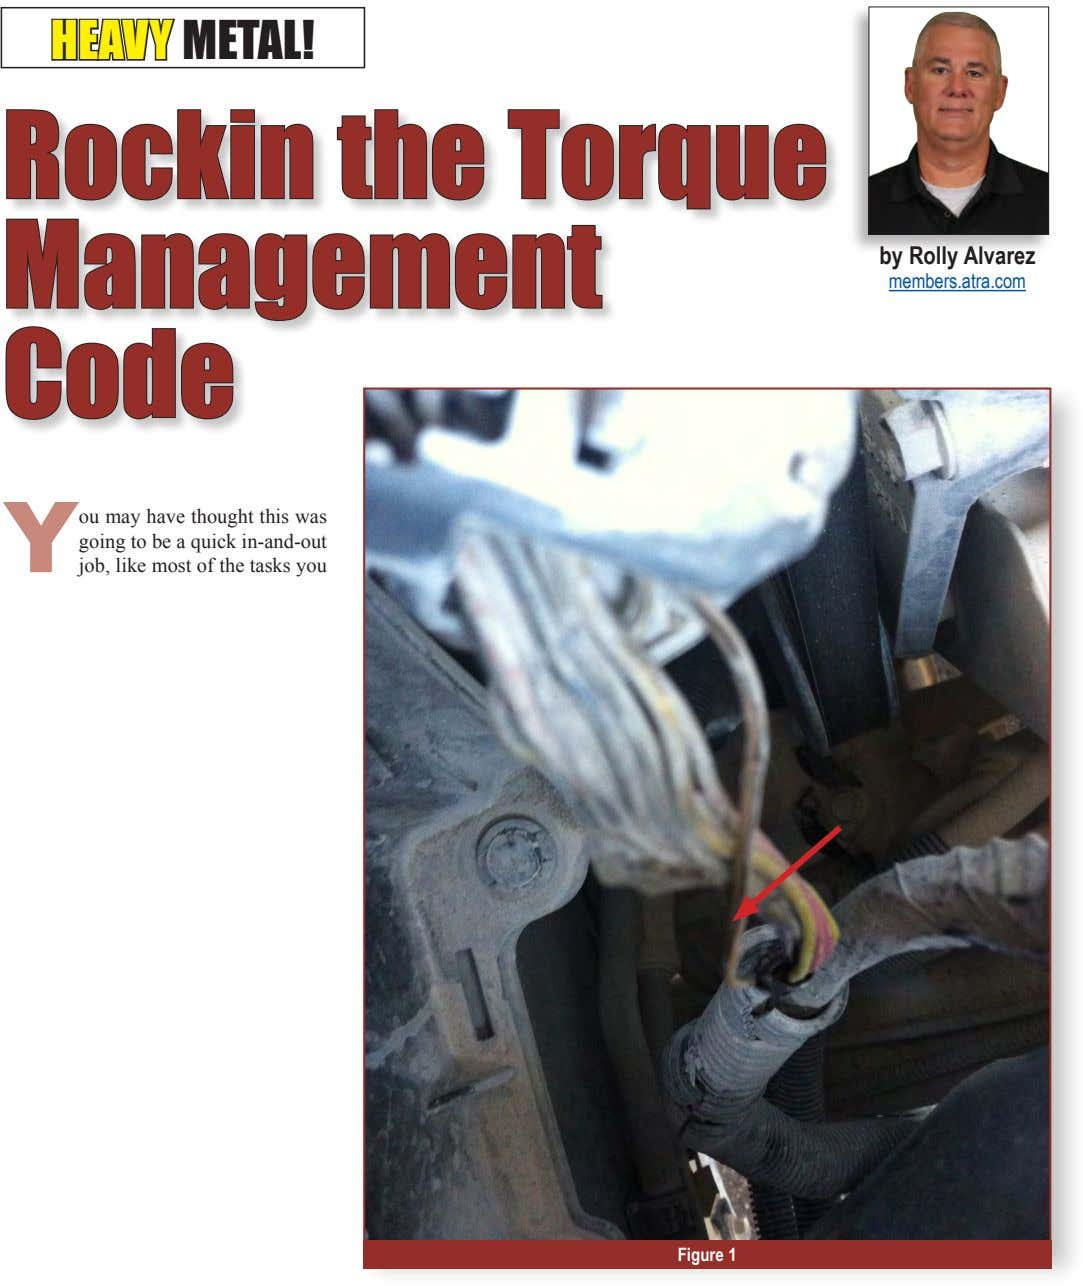 HEAVY METAL! Rockin the Torque Management by Rolly Alvarez members.atra.com Code Y ou may have